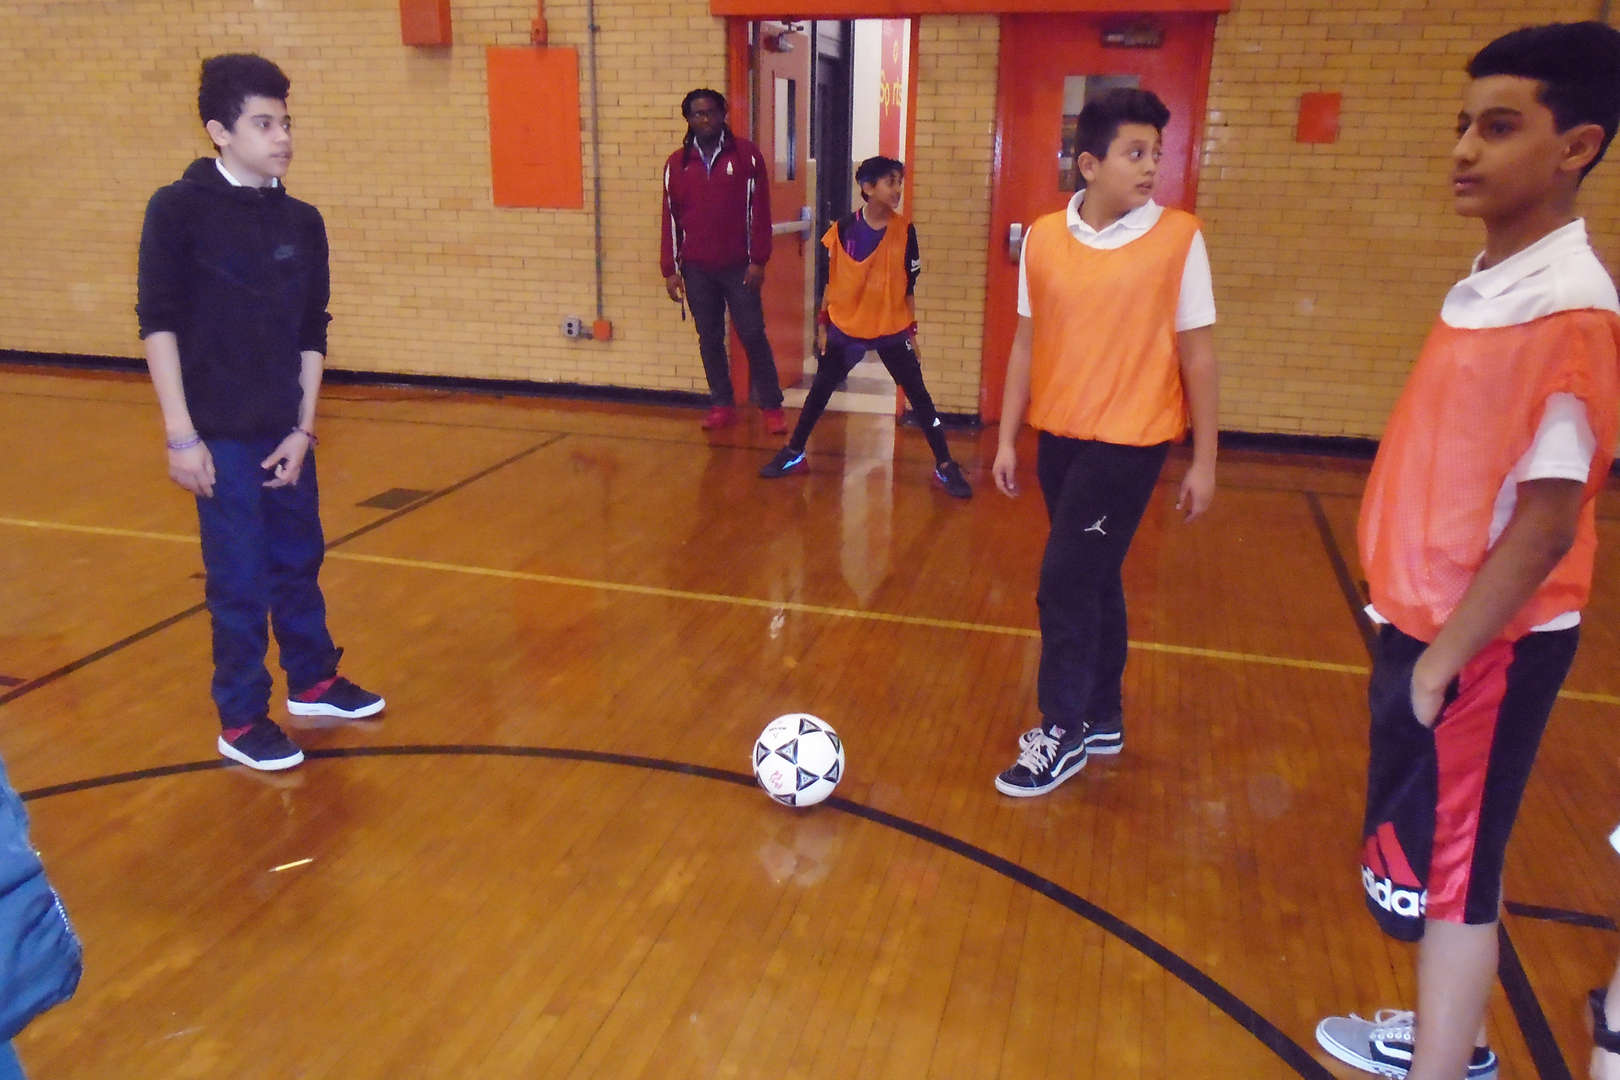 Students playing soccer together